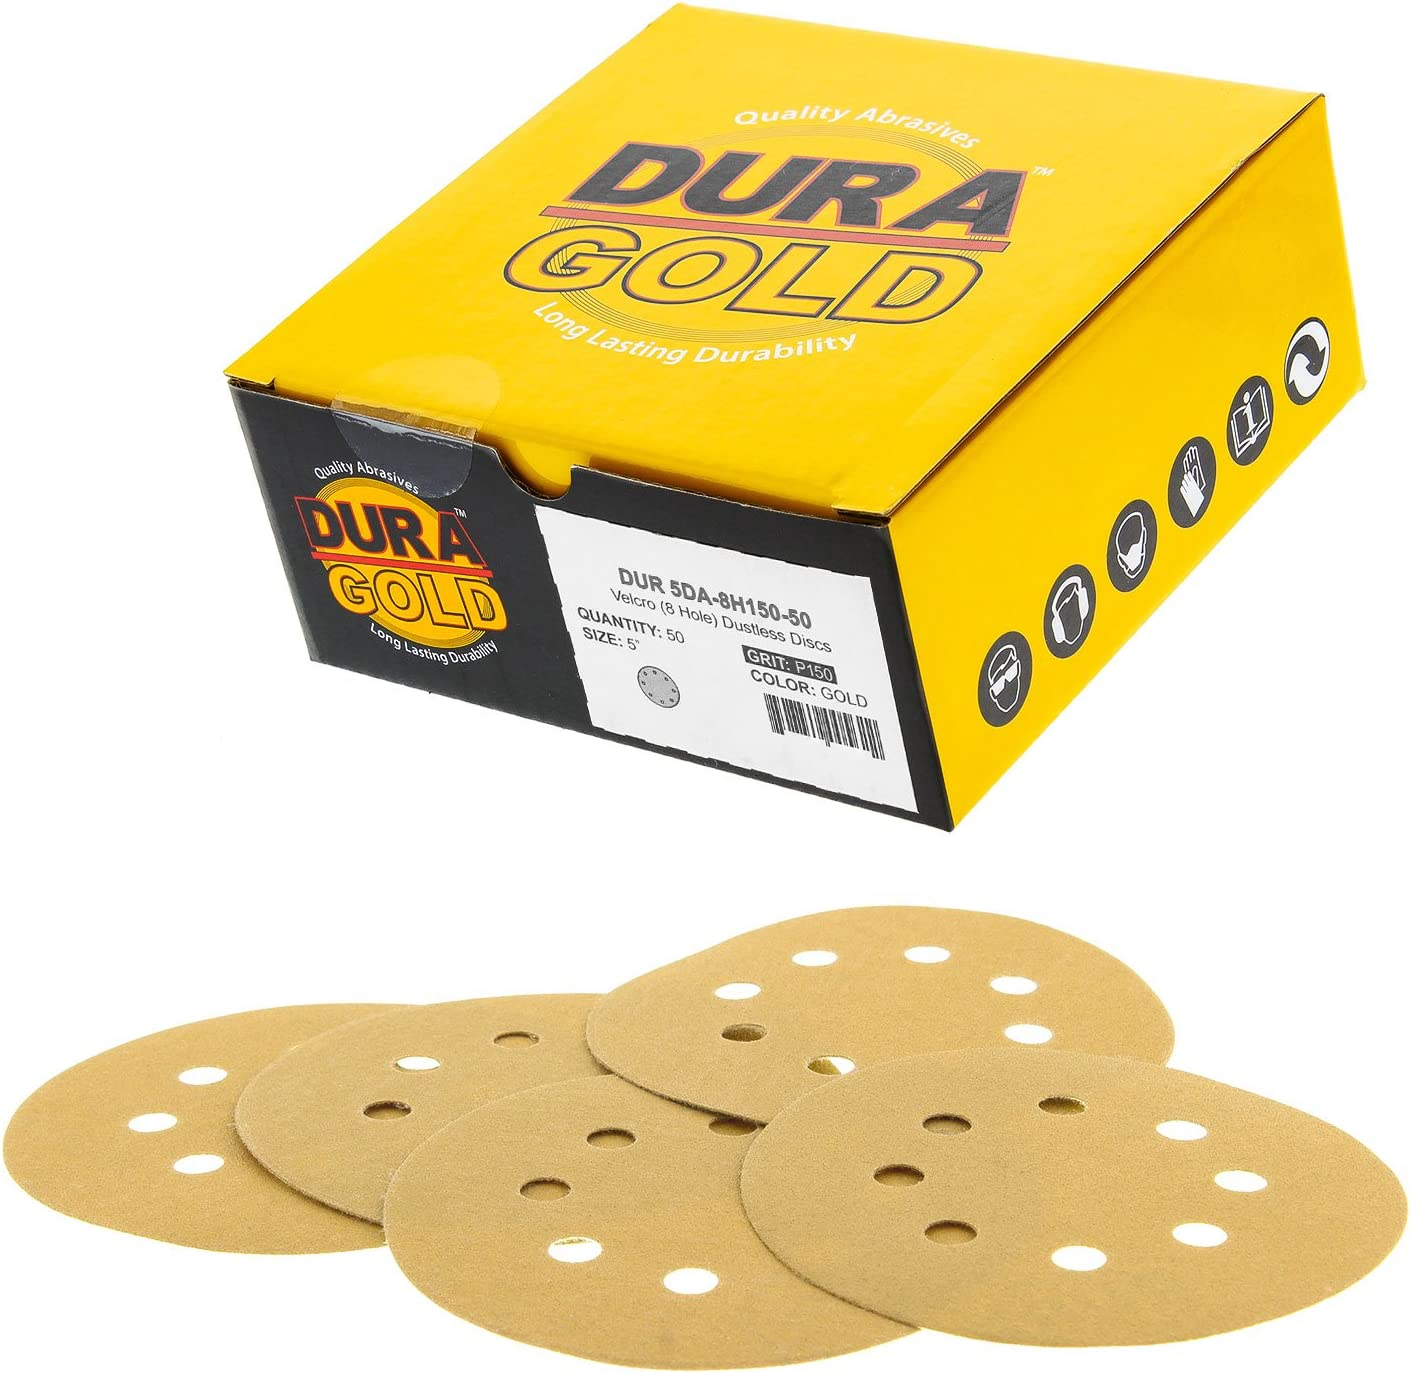 """Dura-Gold Premium - 150 Grit - 5"""" Gold Sanding Discs - 8-Hole Dustless Hook and Loop for DA Sander - Box of 50 Finishing Sandpaper Discs for Woodworking or Automotive"""